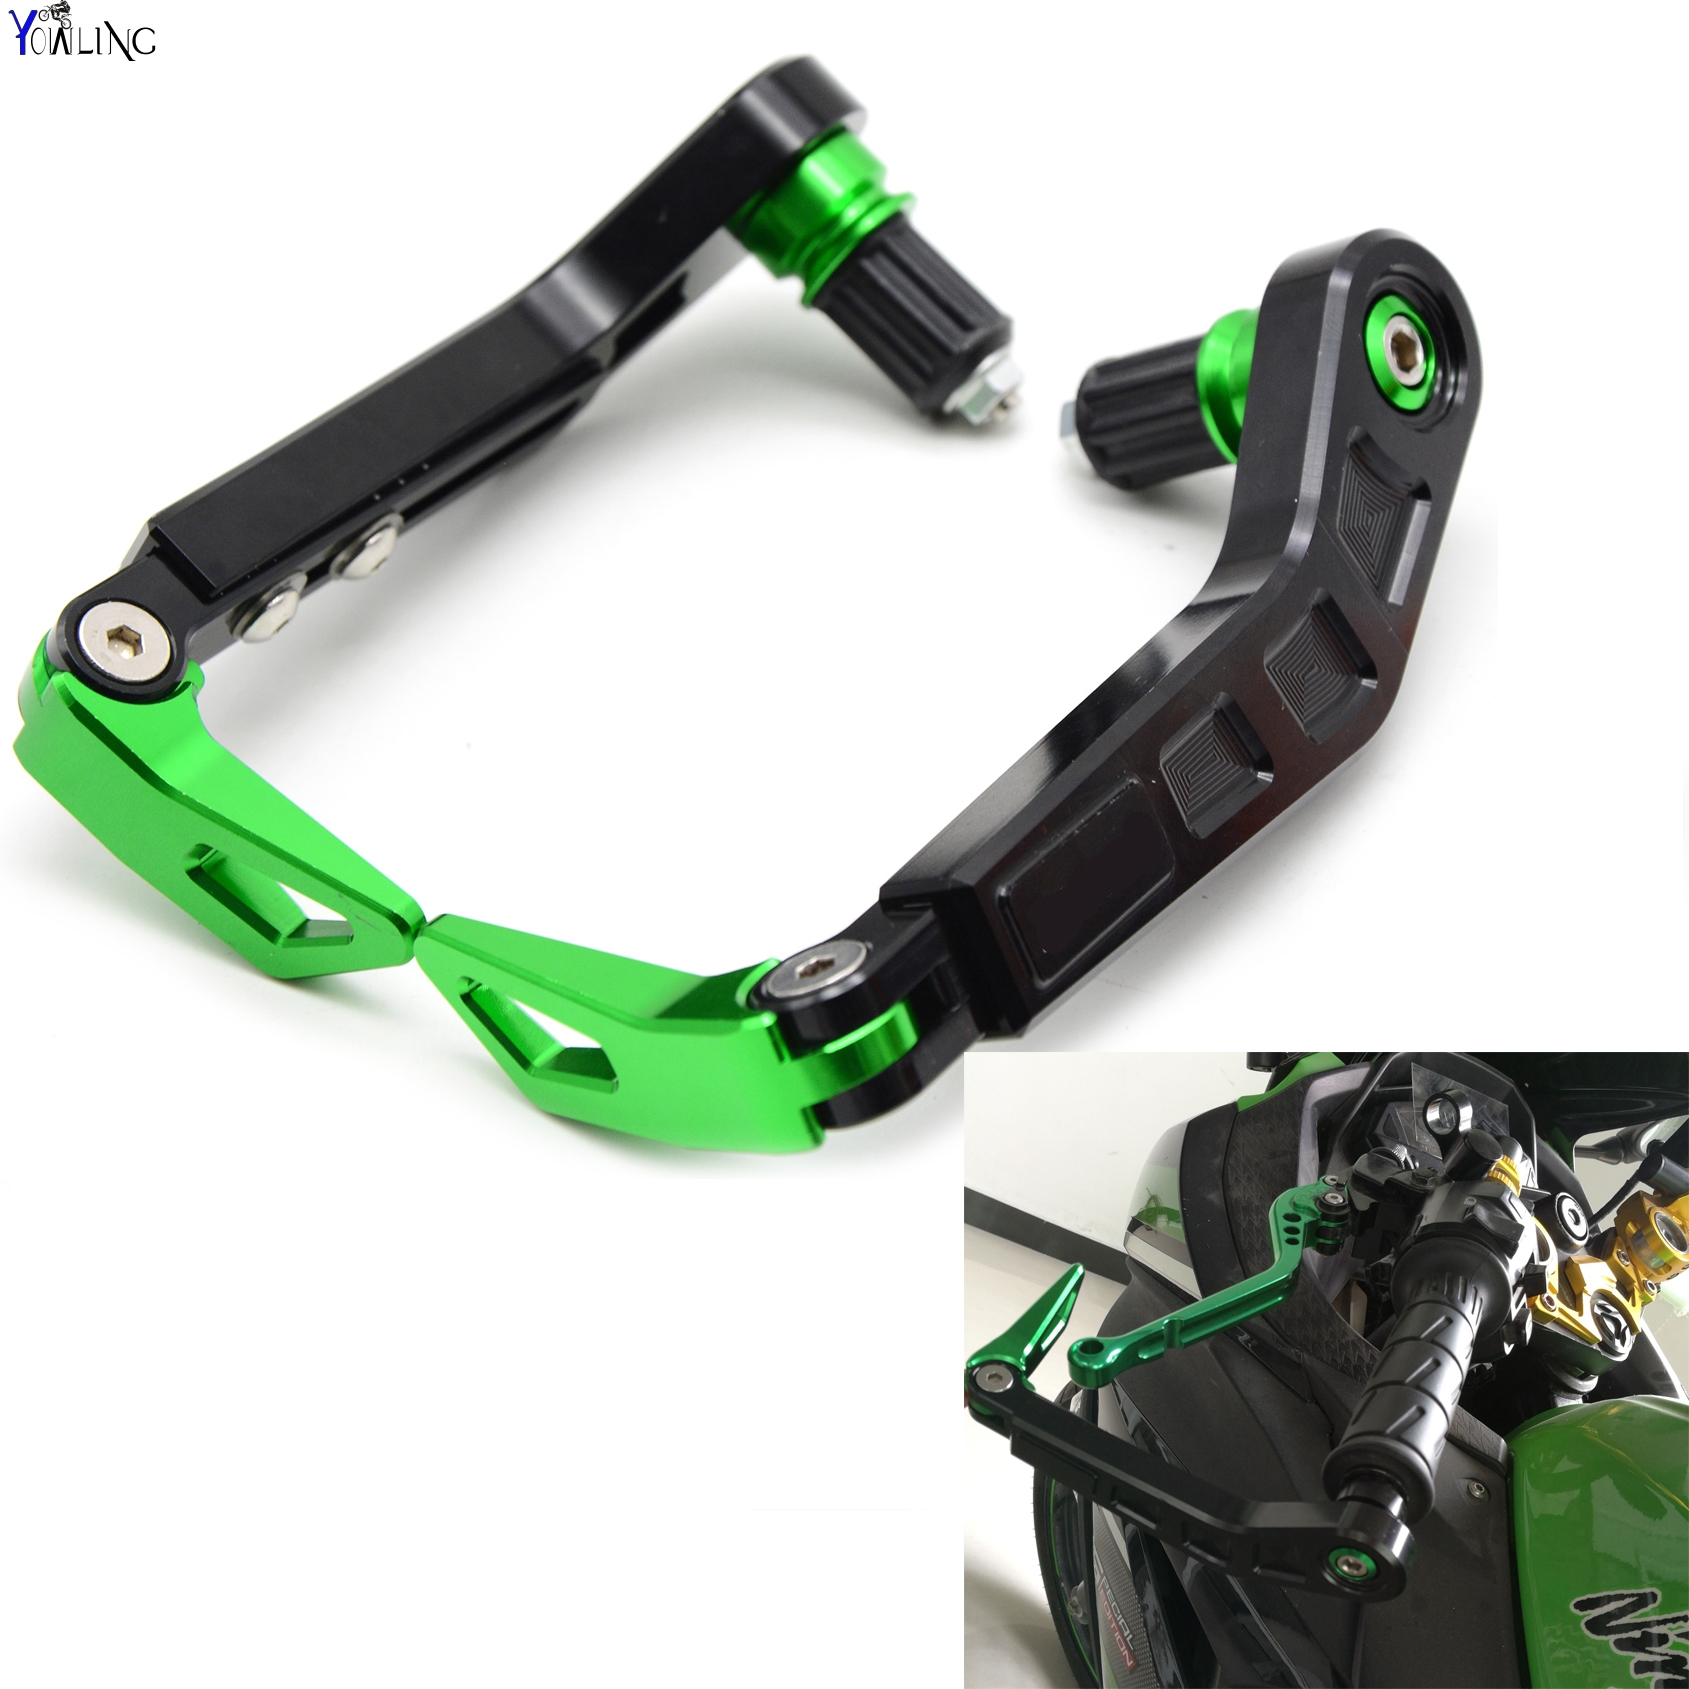 Universal 7/822mm Motorcycle Handlebar Brake Clutch Lever Protect Guard for Kawasaki Z ZR ZX 125 250 750 750R 750S 800 1000 SX for 22mm 7 8 handlebar motorcycle dirt bike universal stunt clutch lever assembly cnc aluminum